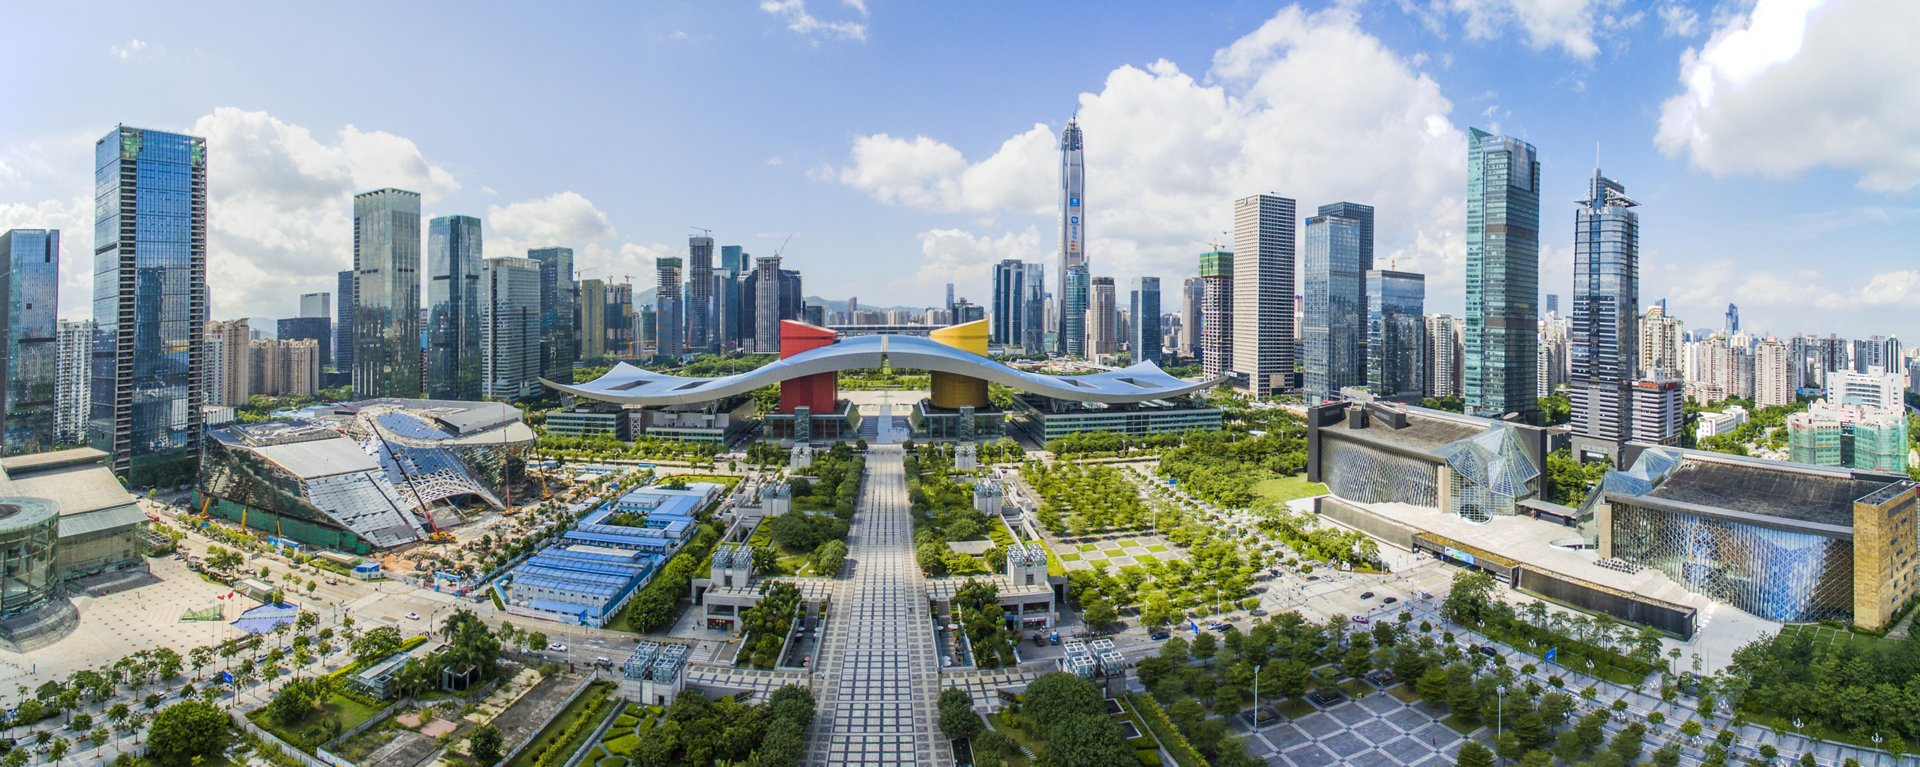 Shenzhen The Innovation Powerhouse Taking On Silicon Valley Innovation Airbus